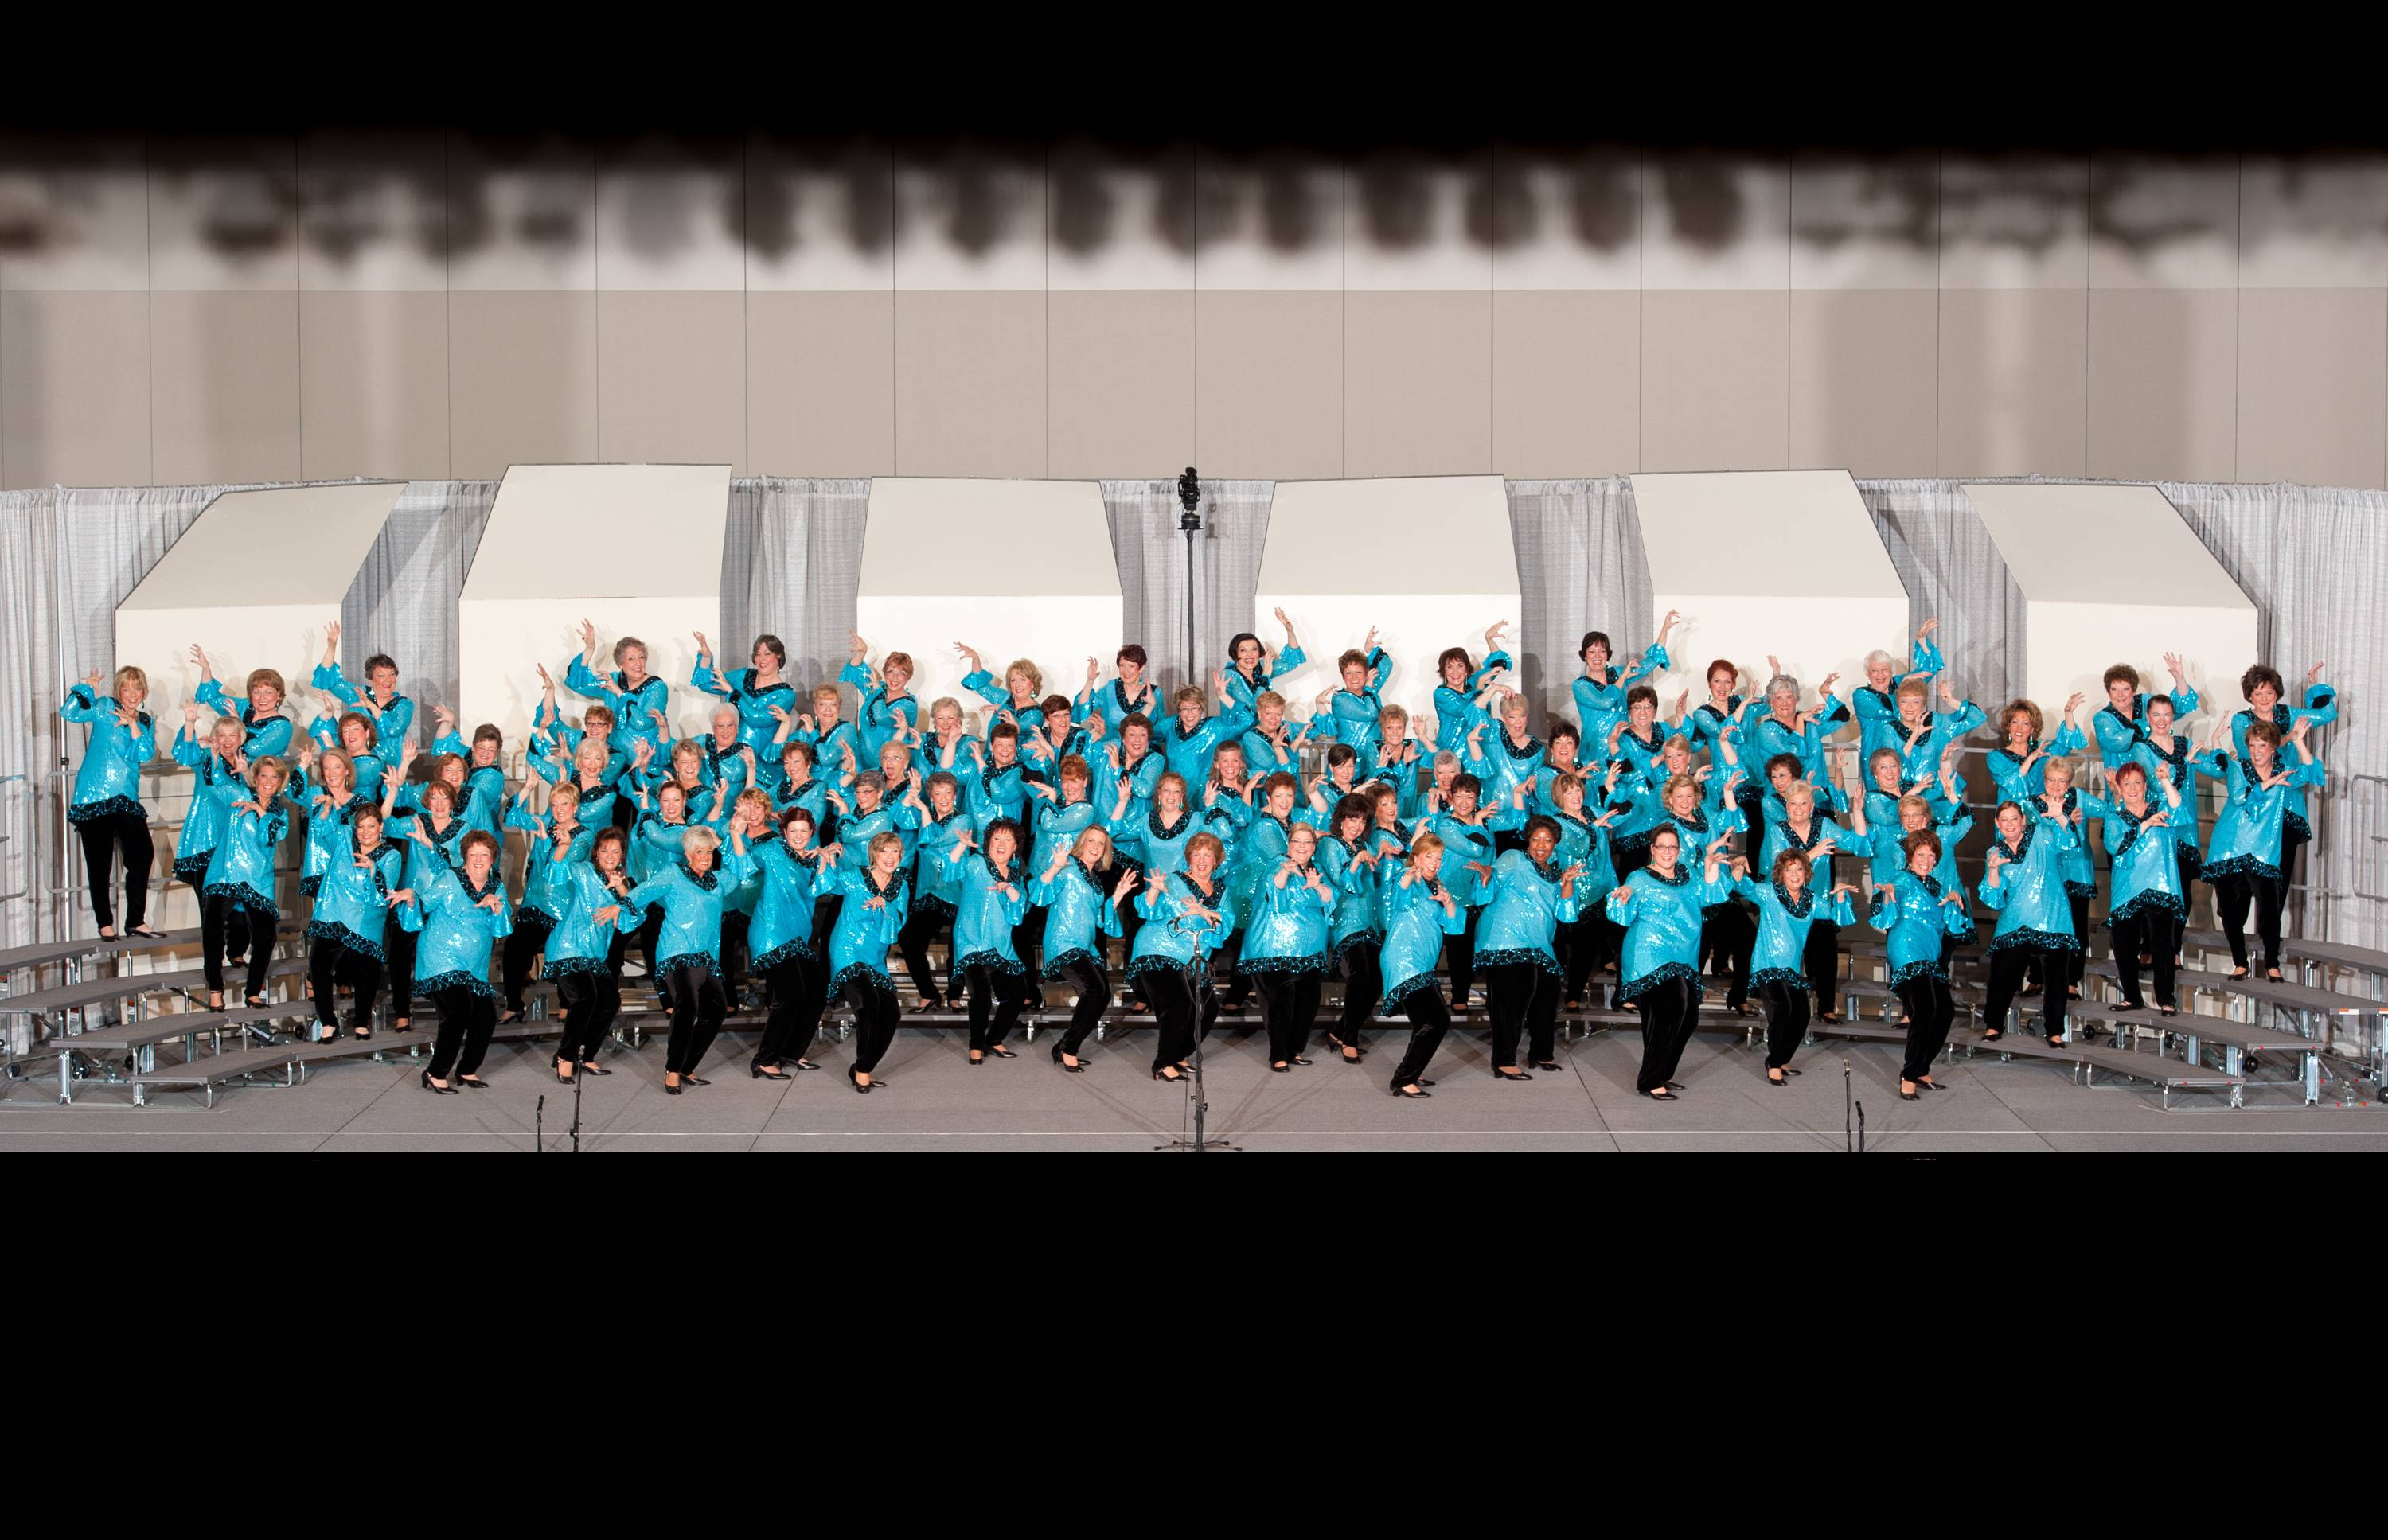 The Choral-Aires performs at the Sweet Adelines International Competition in Houston, Texas.